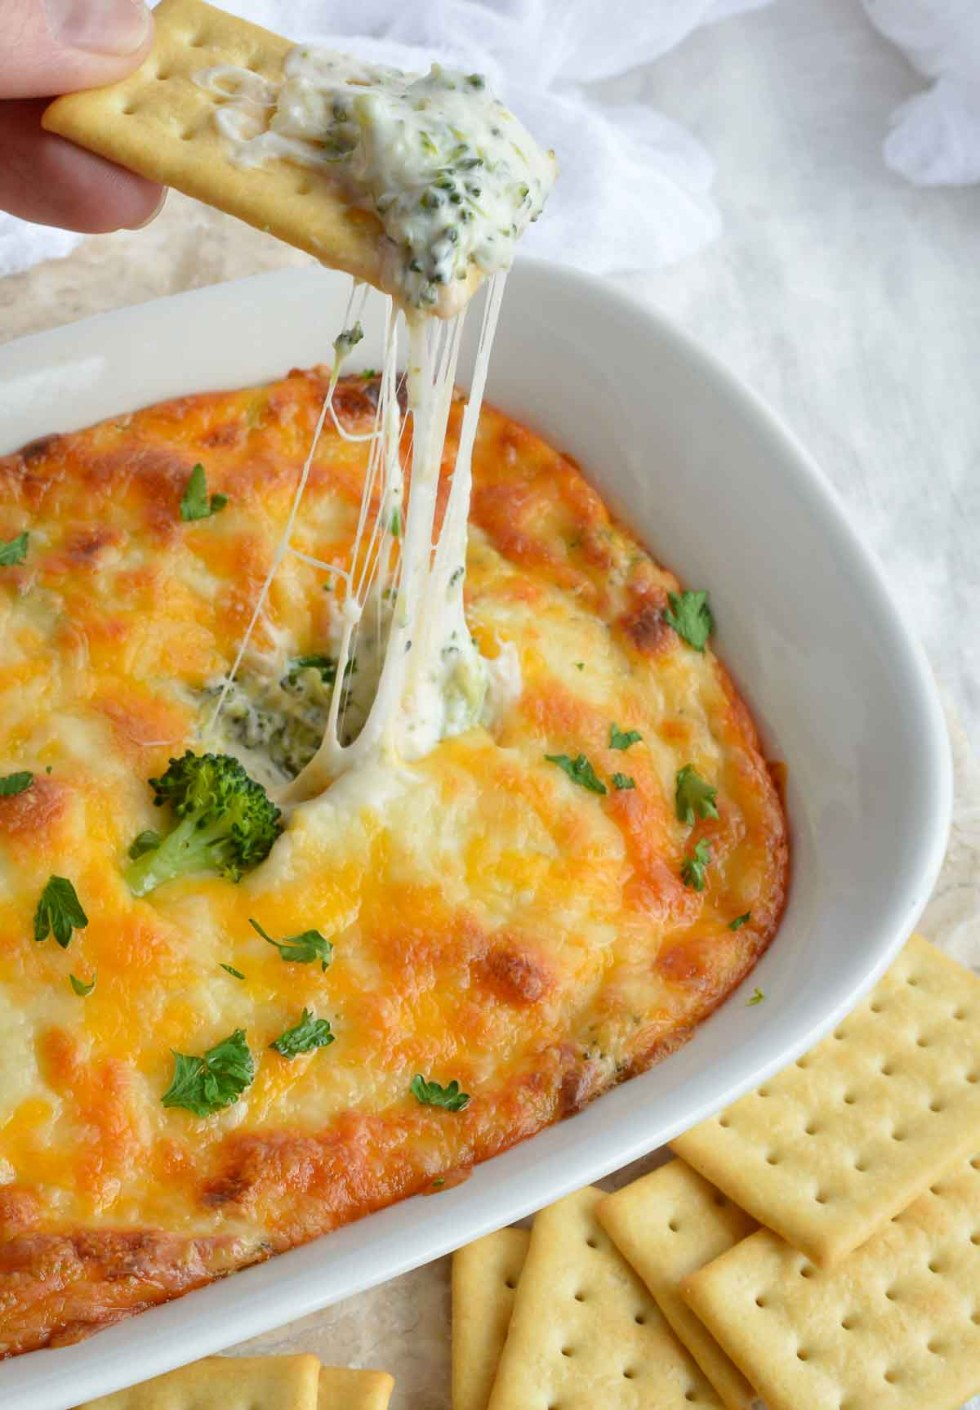 This Broccoli Cheese Dip Recipe is an easy and unique appetizer. Perfect for parties, holiday feasts and game day grub!